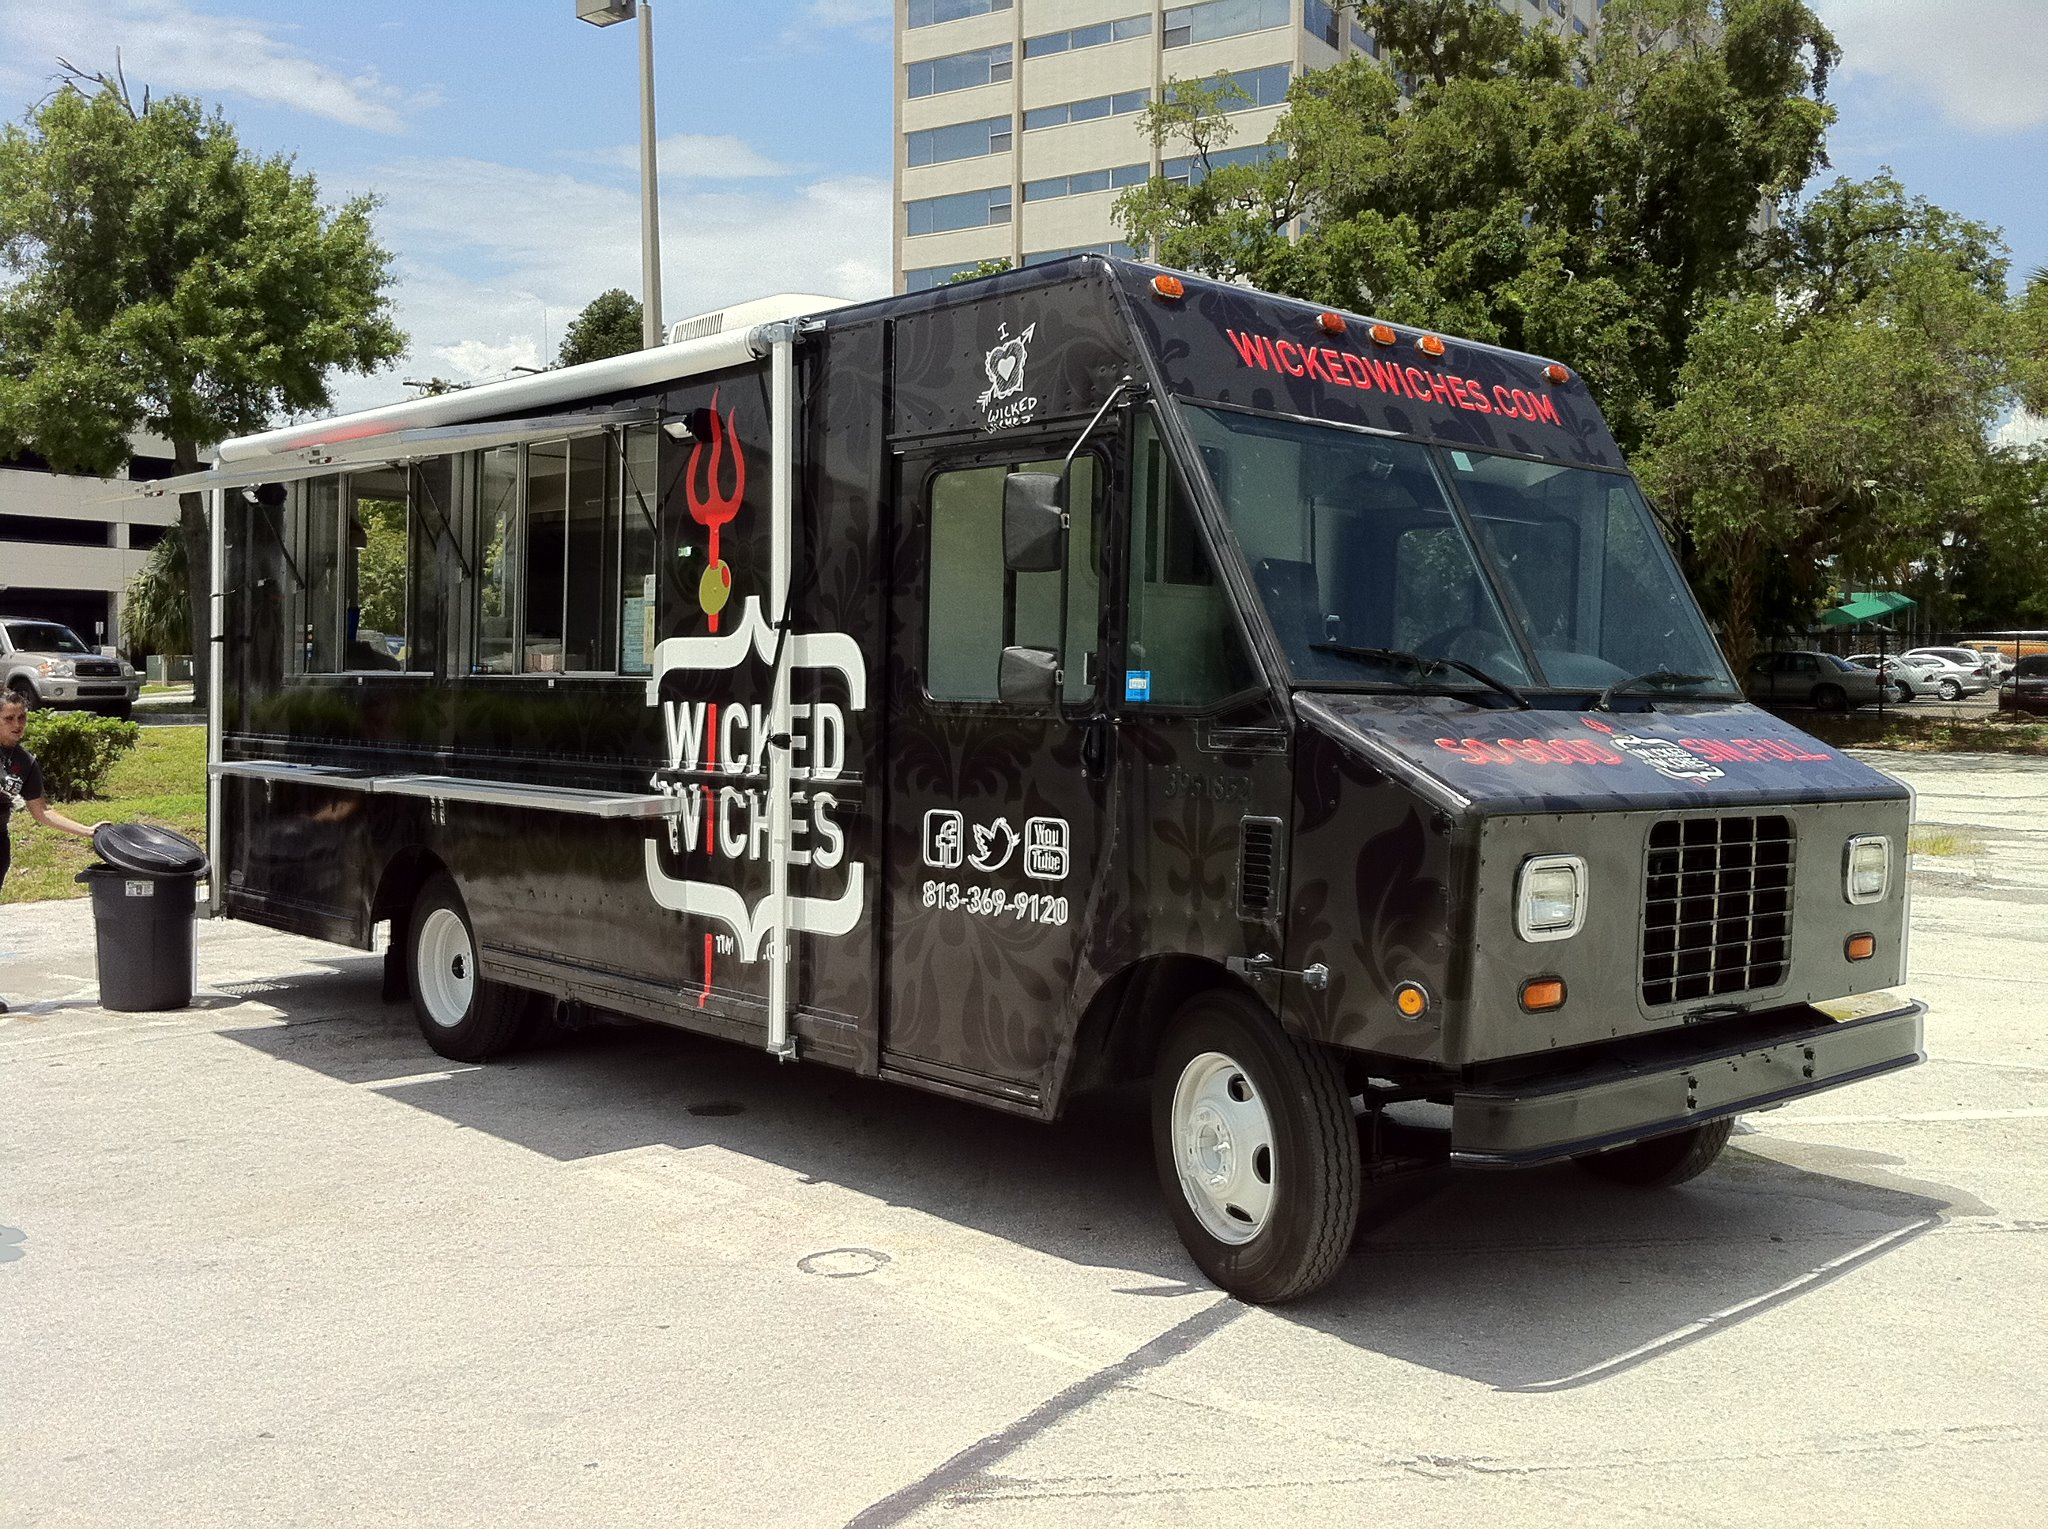 Wicked Wiches Food Truck